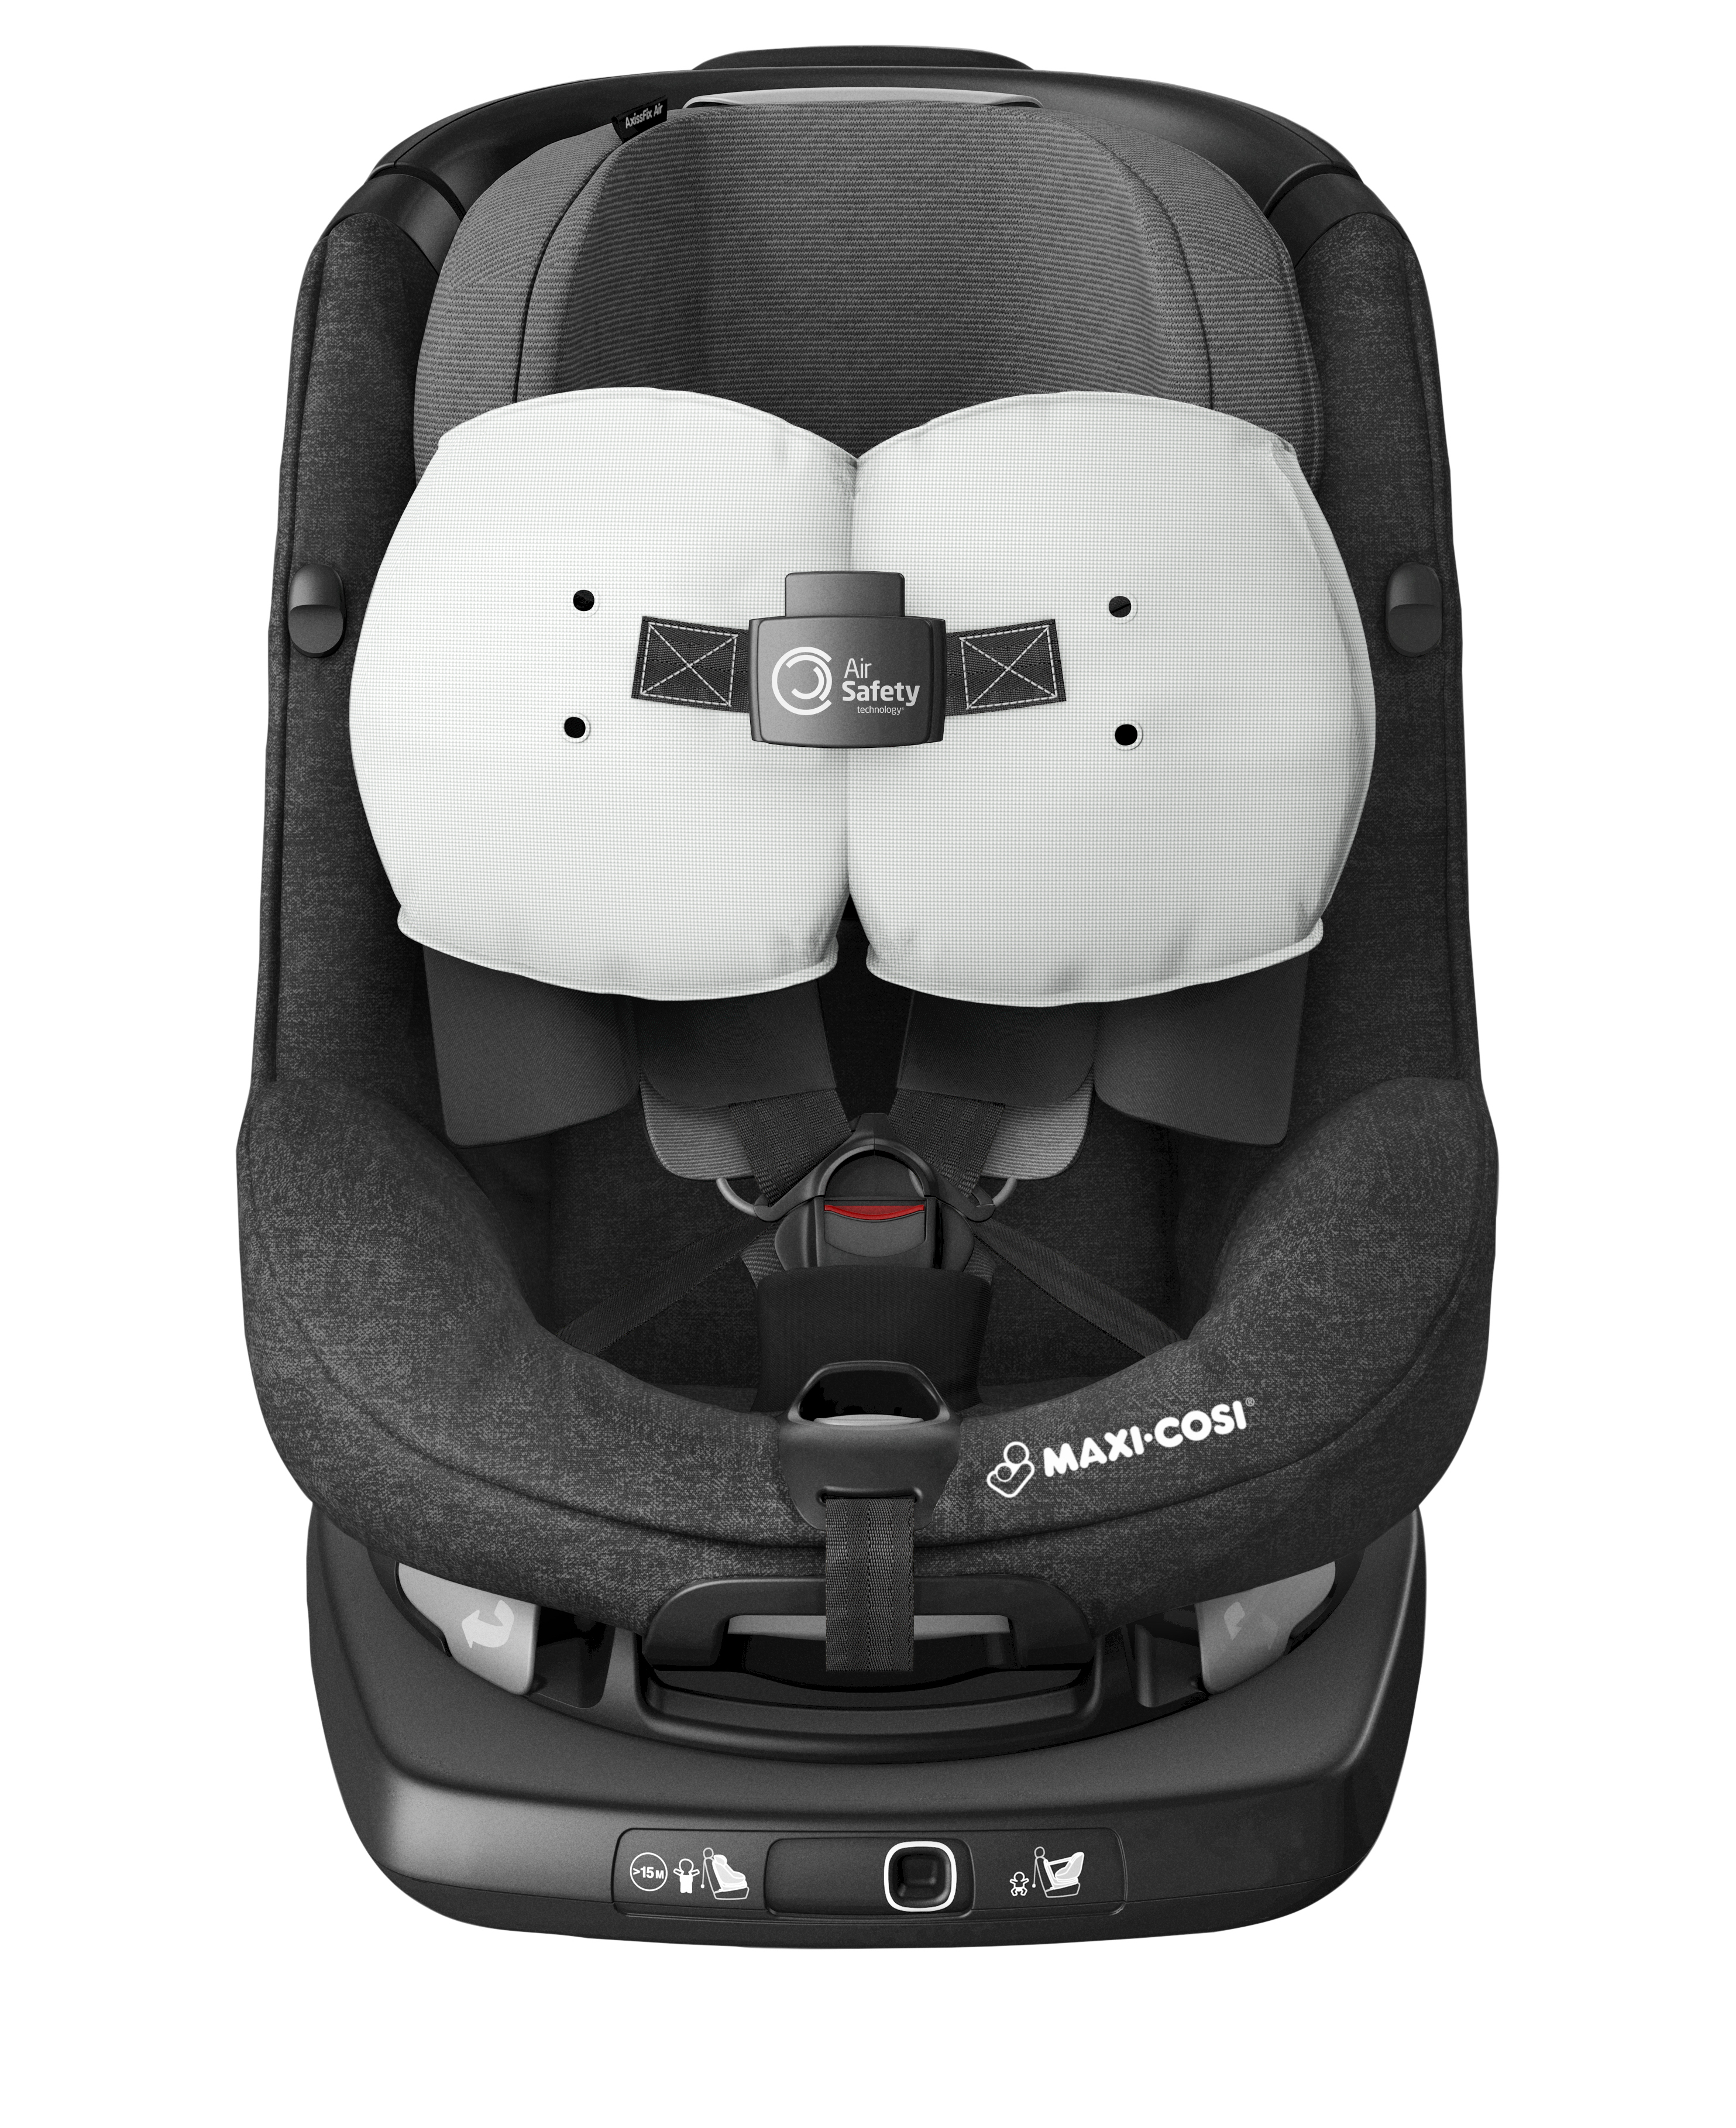 maxi cosi unveils first car seat with in built airbags. Black Bedroom Furniture Sets. Home Design Ideas